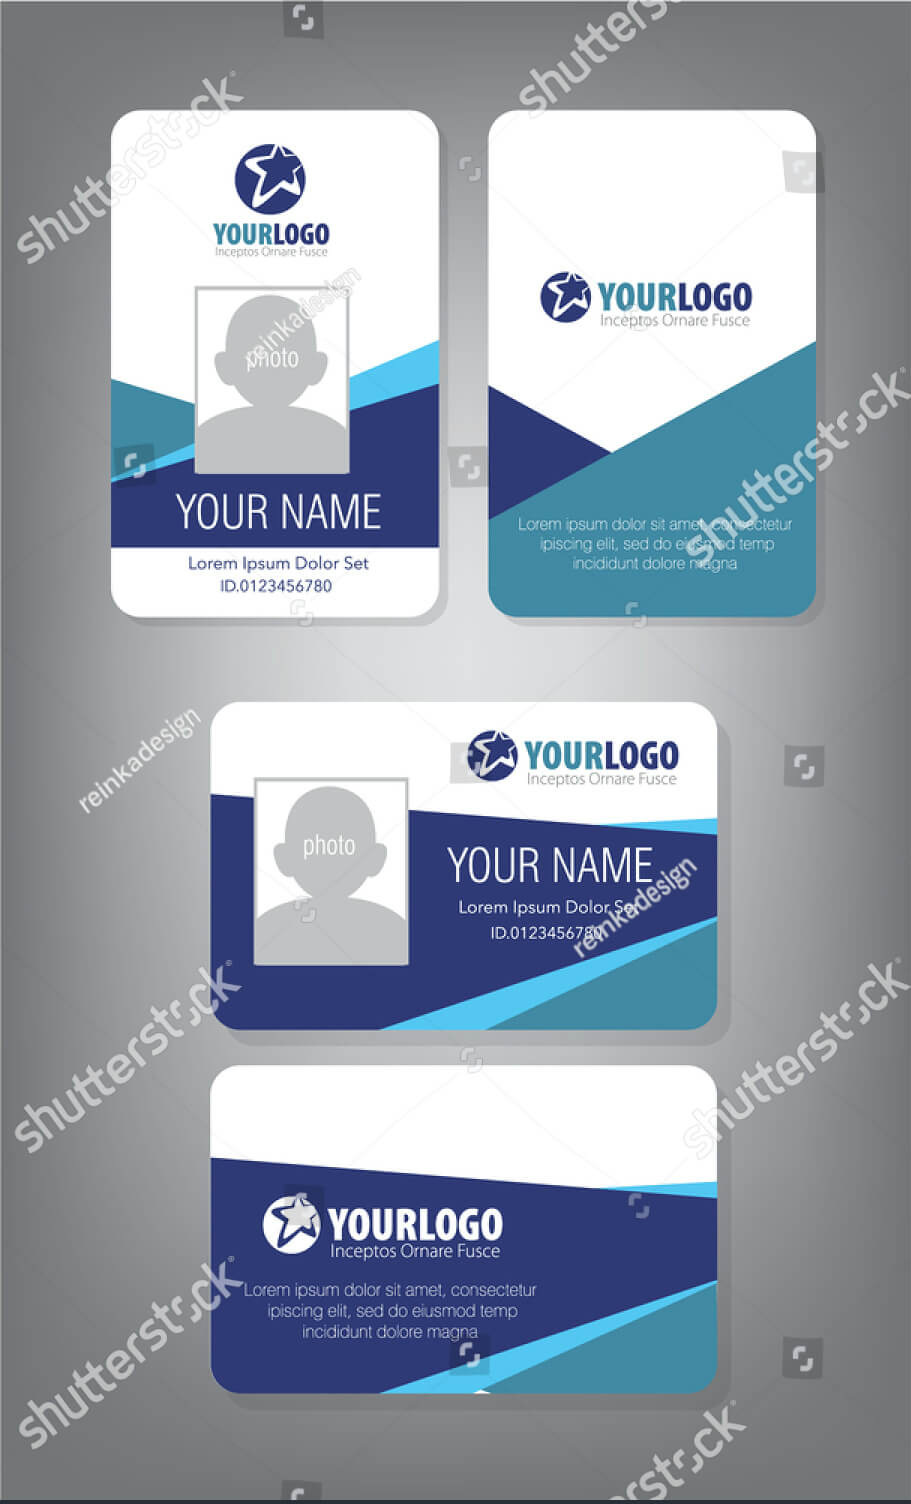 43+ Professional Id Card Designs - Psd, Eps, Ai, Word | Free pertaining to Faculty Id Card Template